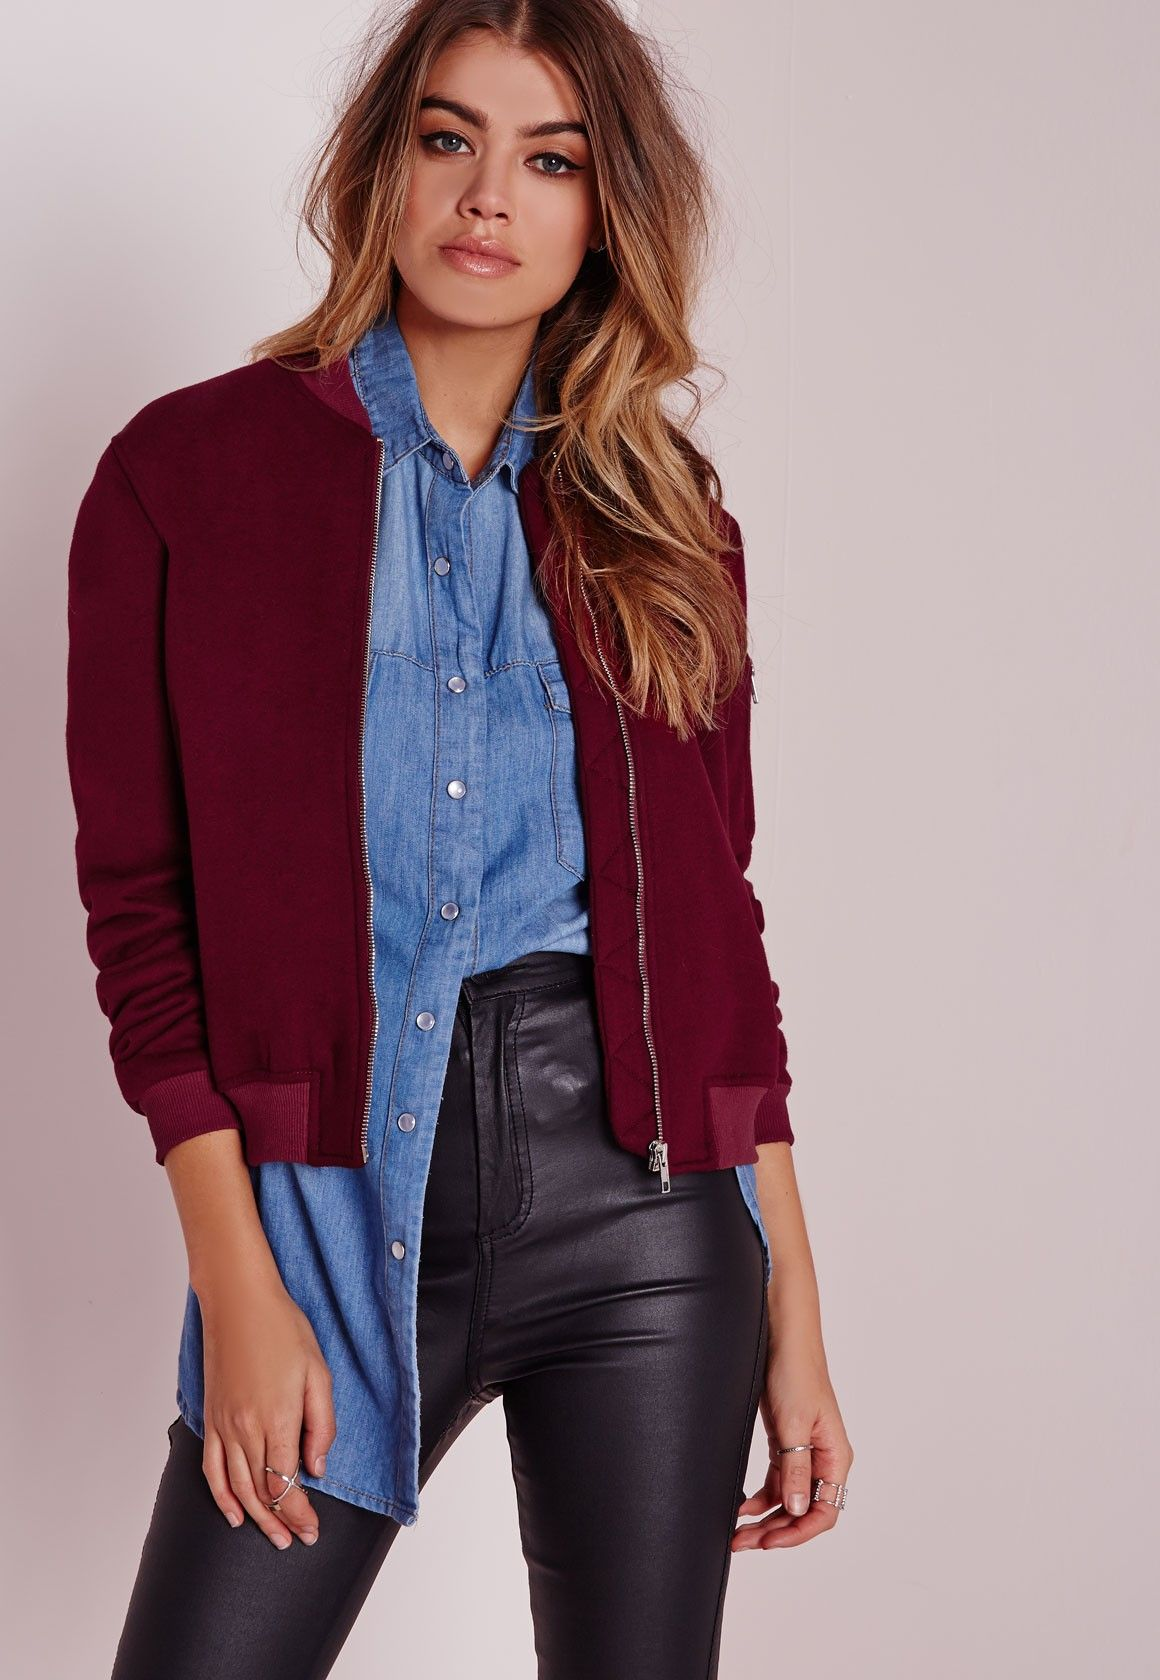 057f36bacf5 Bordeaux baseball jacket with bordeaux leather jeans  We love it! Burgundy  Bomber Jacket